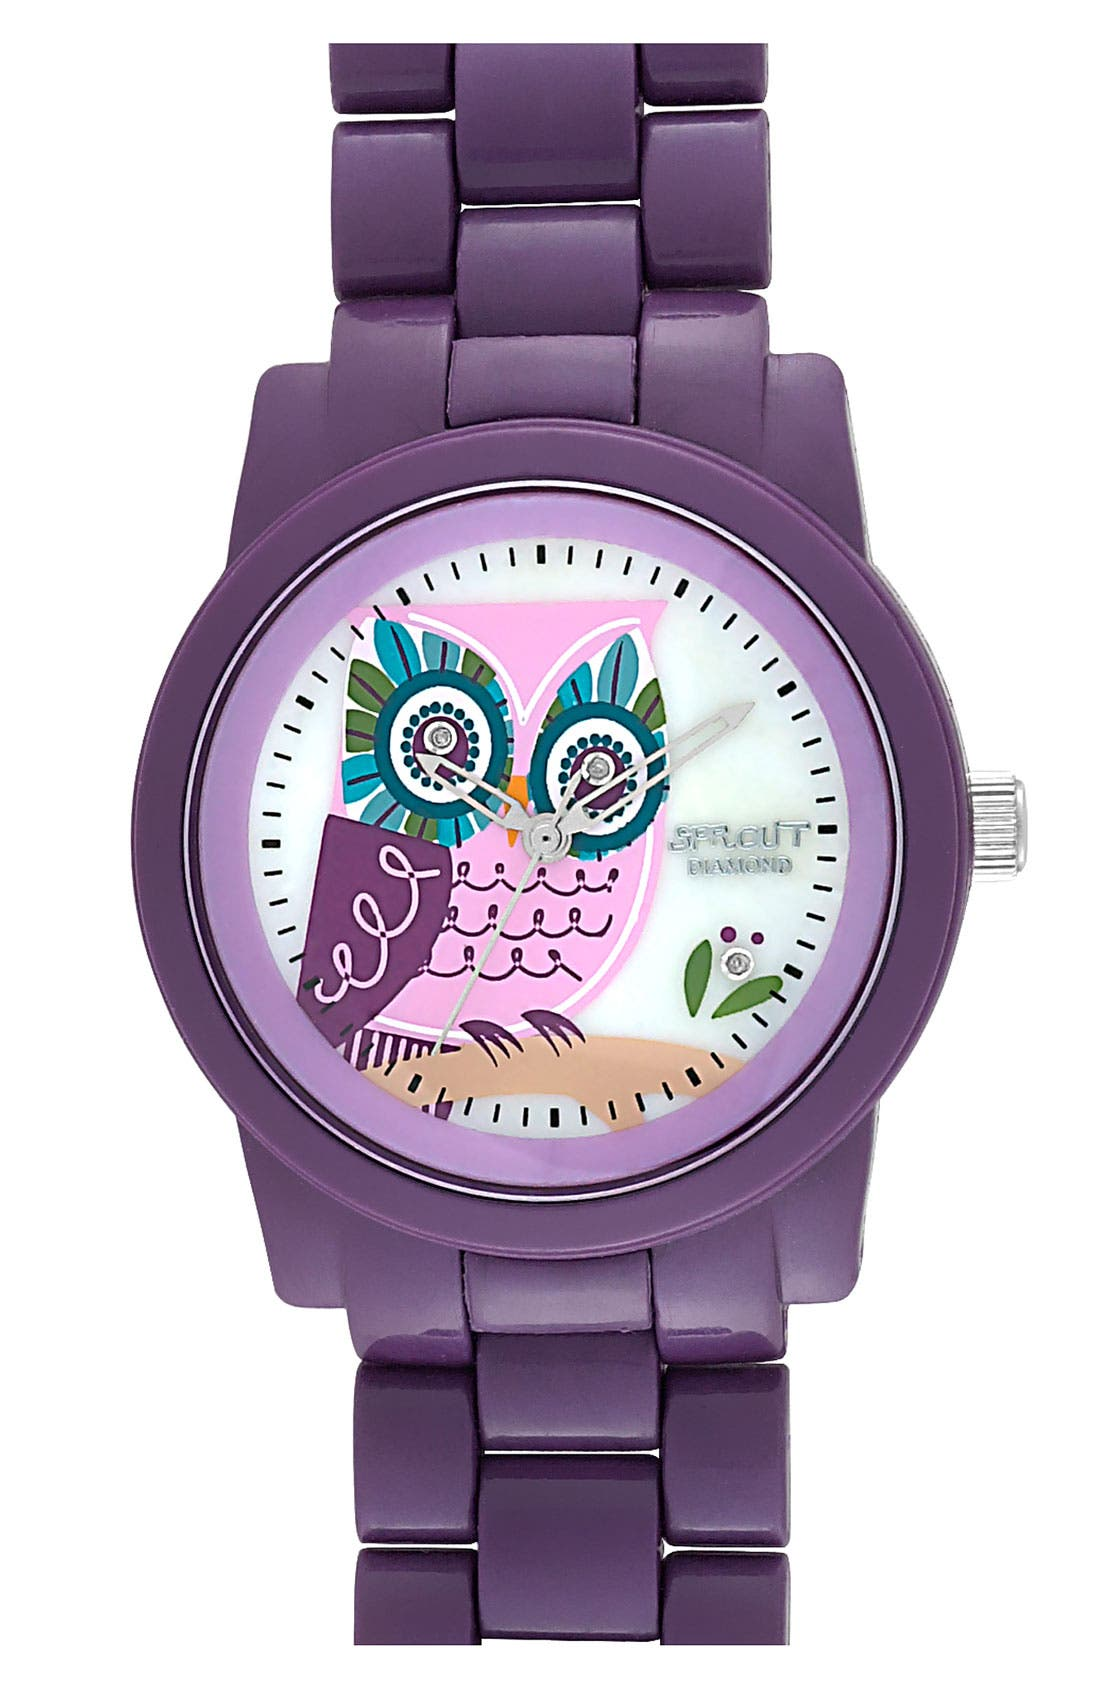 Main Image - SPROUT™ Watches Diamond Owl Watch. 37mm